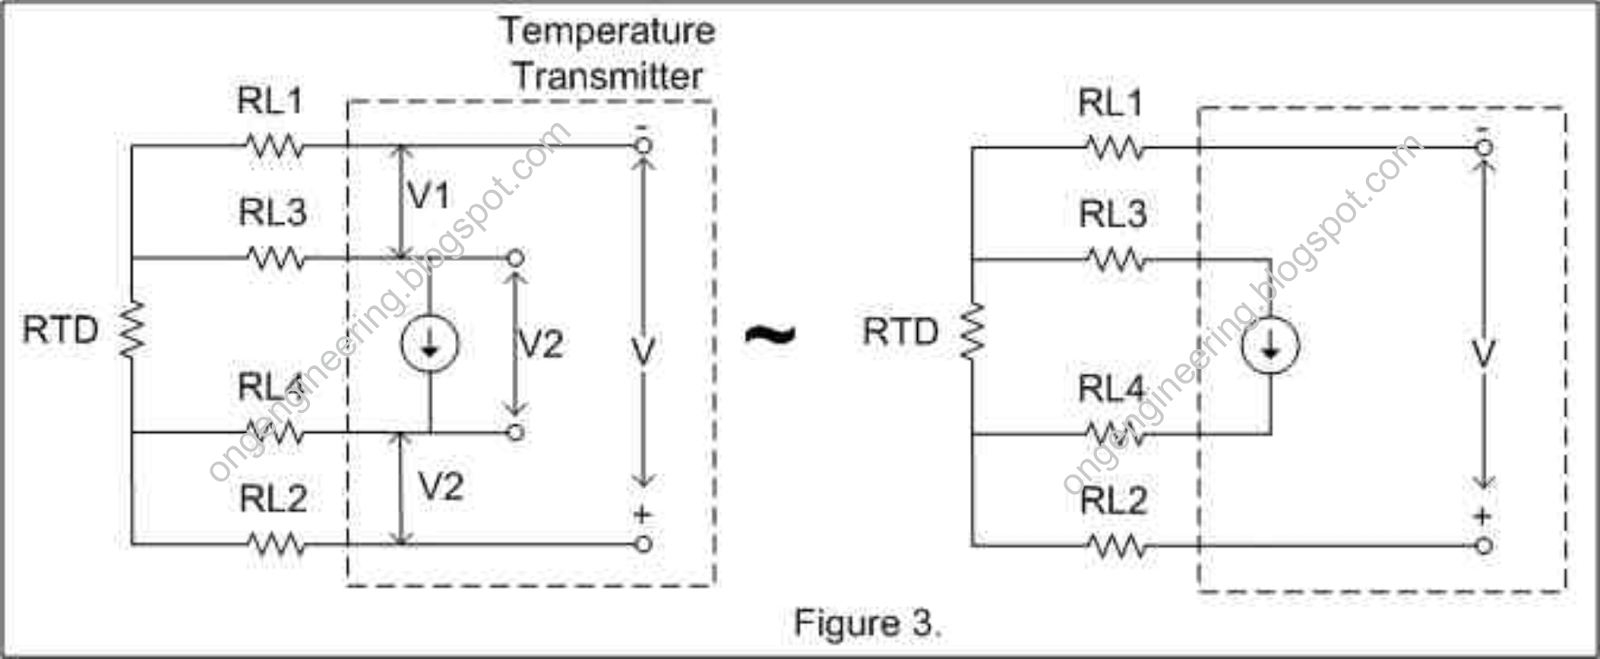 medium resolution of for best compensation of wire resistance used by rtd 4 wires are the best choices it subtracts all the wire resistance from the voltage drop equation see